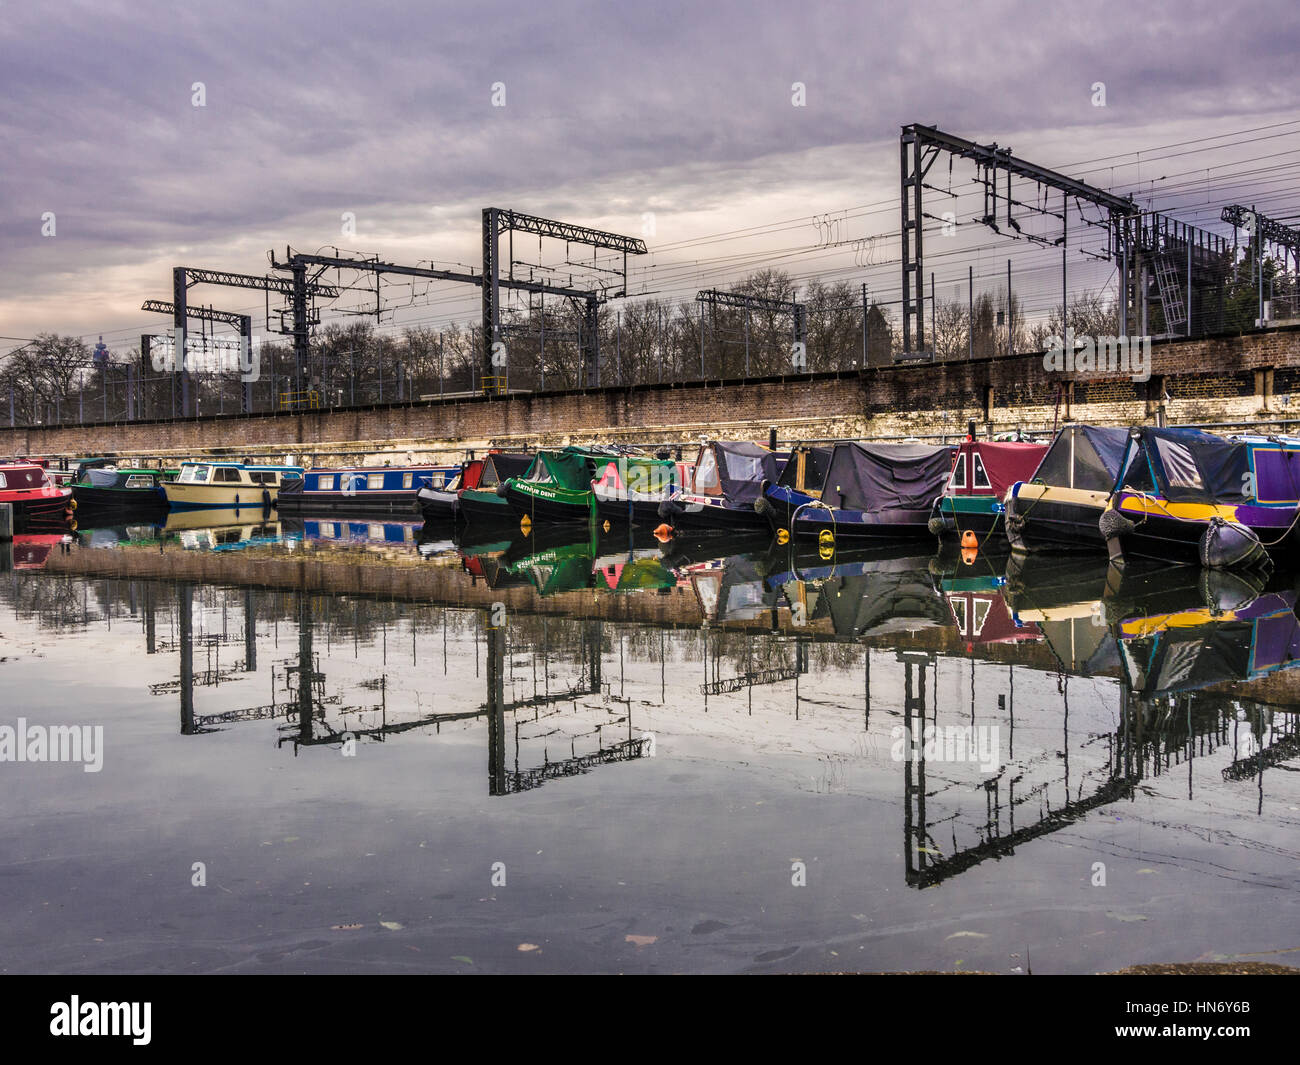 Canal boats moored on Regent's Canal with Train lines into St Pancras Station in background, London, UK. - Stock Image